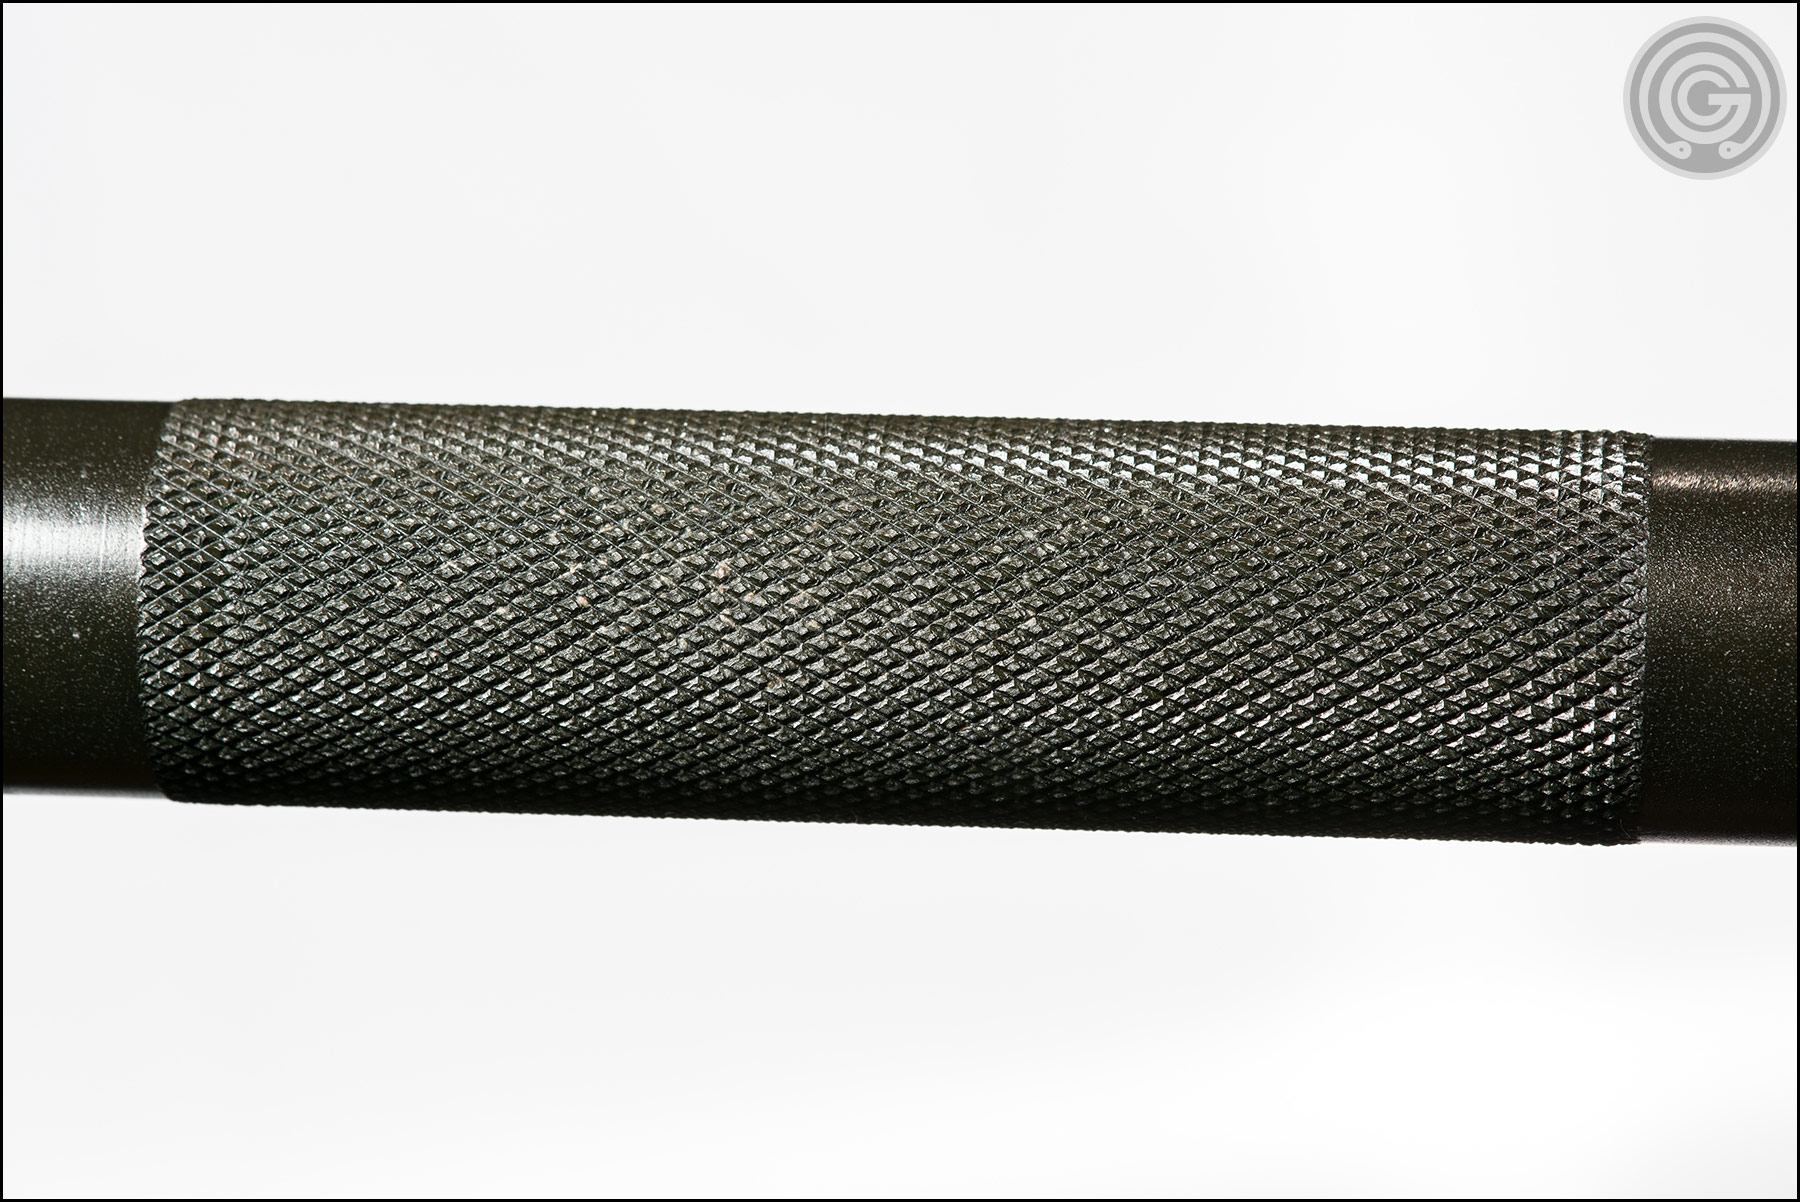 Knurling Gallery - Buddy Capps Texas Power Bar center knurl